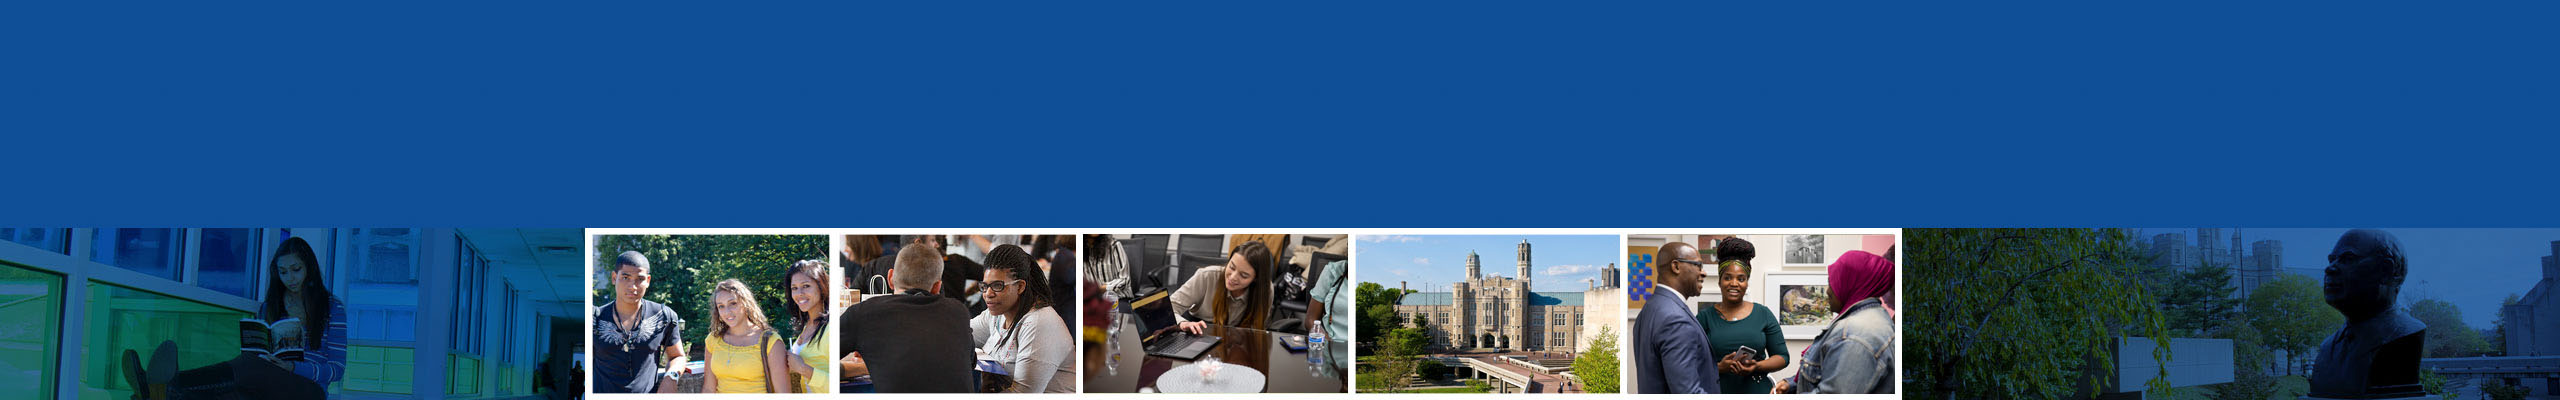 Lehman College Provost Website